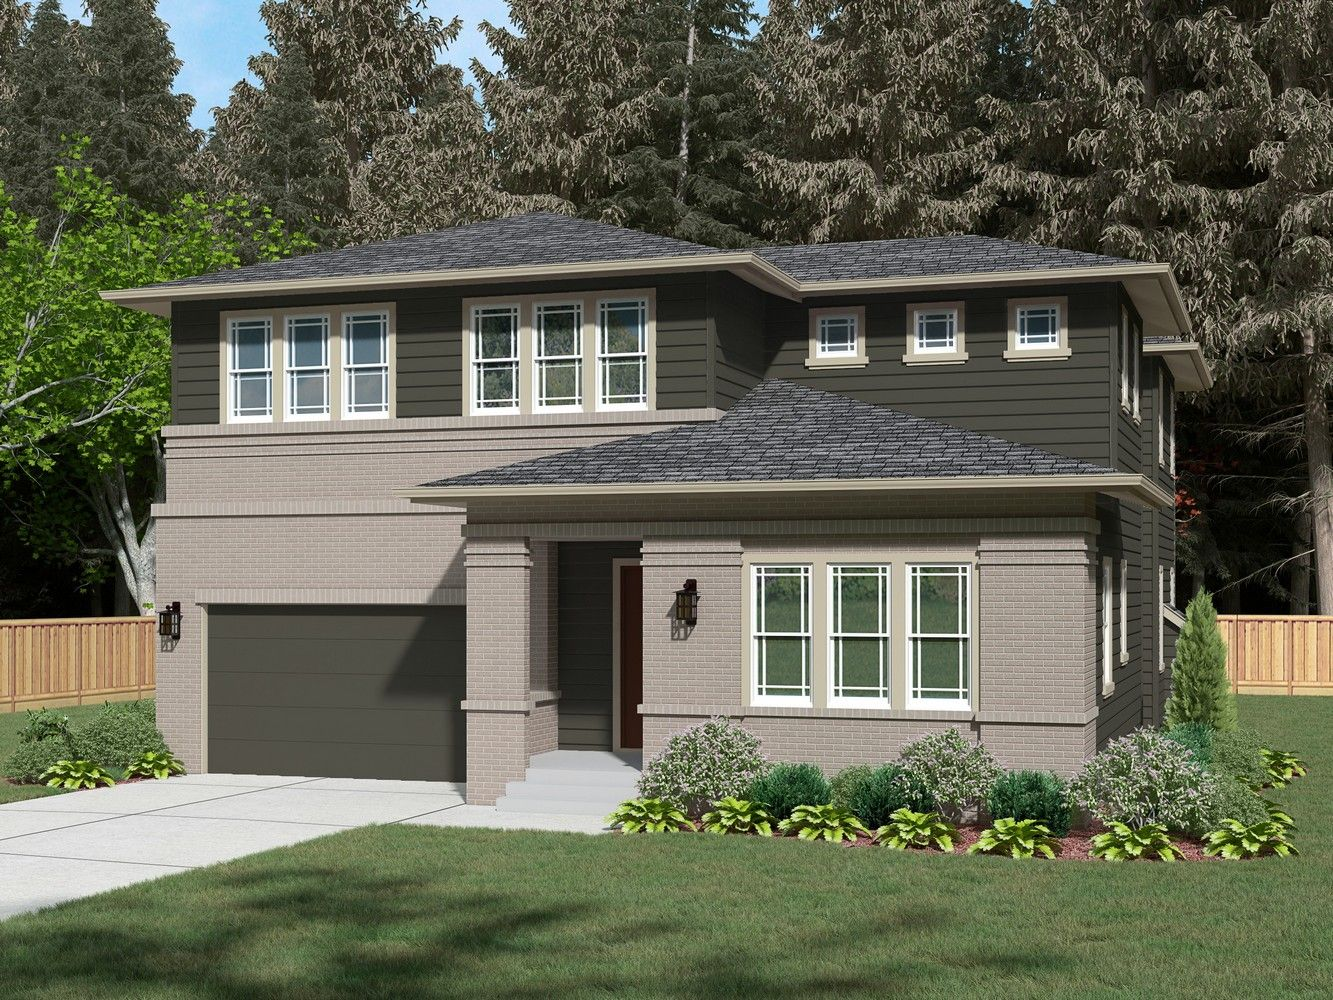 Single Family for Sale at Greenstone Heights - Residence B-410 21809 34th Dr Se Bothell, Washington 98021 United States